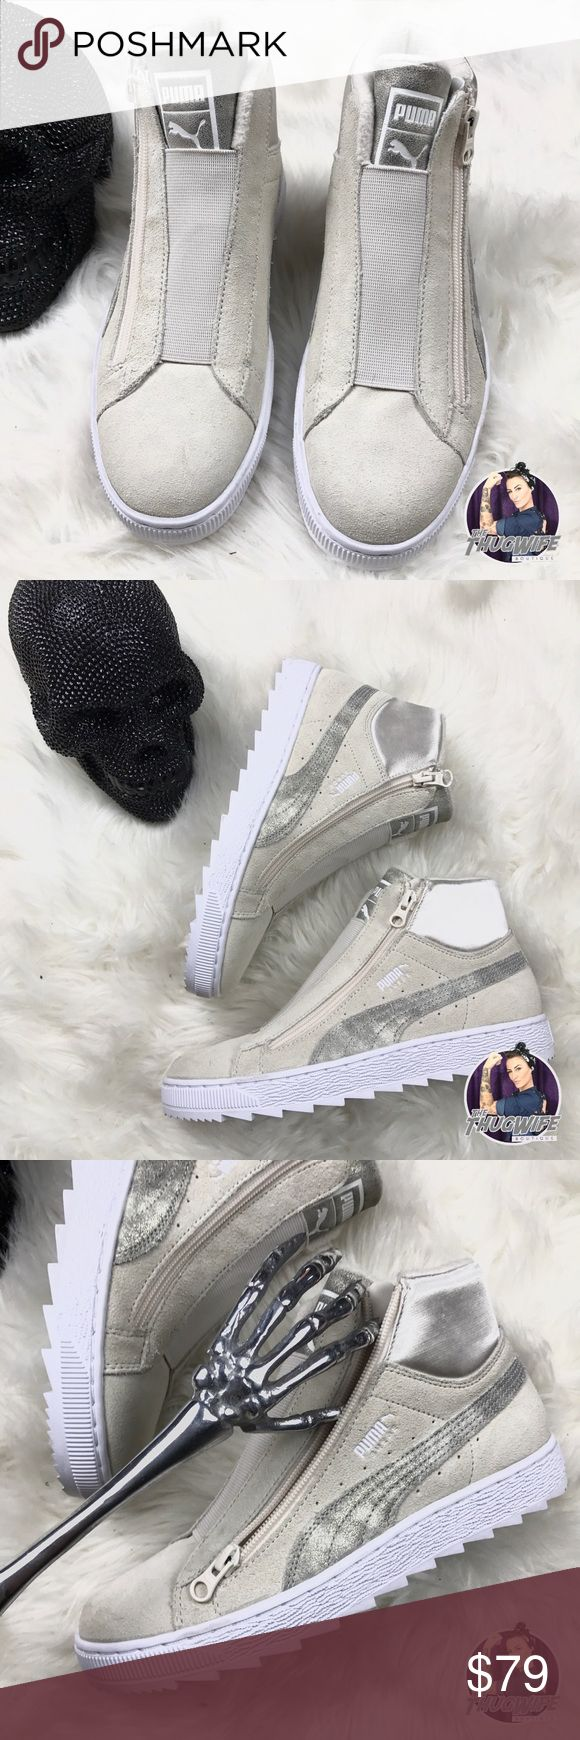 Puma high top zipper side sneakers NEW WITH TAGS    Fckn badass beige suede pumas . Full side zip up . High top . Pair with your favorite jeans for a unique pop .  Use the OFFER BUTTON     BUNDLE FOR 10% OFF • 5 star rating  • smoke free  • always 100% authentic    www.thethugwife.com     N O   TRADES  please ladies lets be nice  Puma Shoes